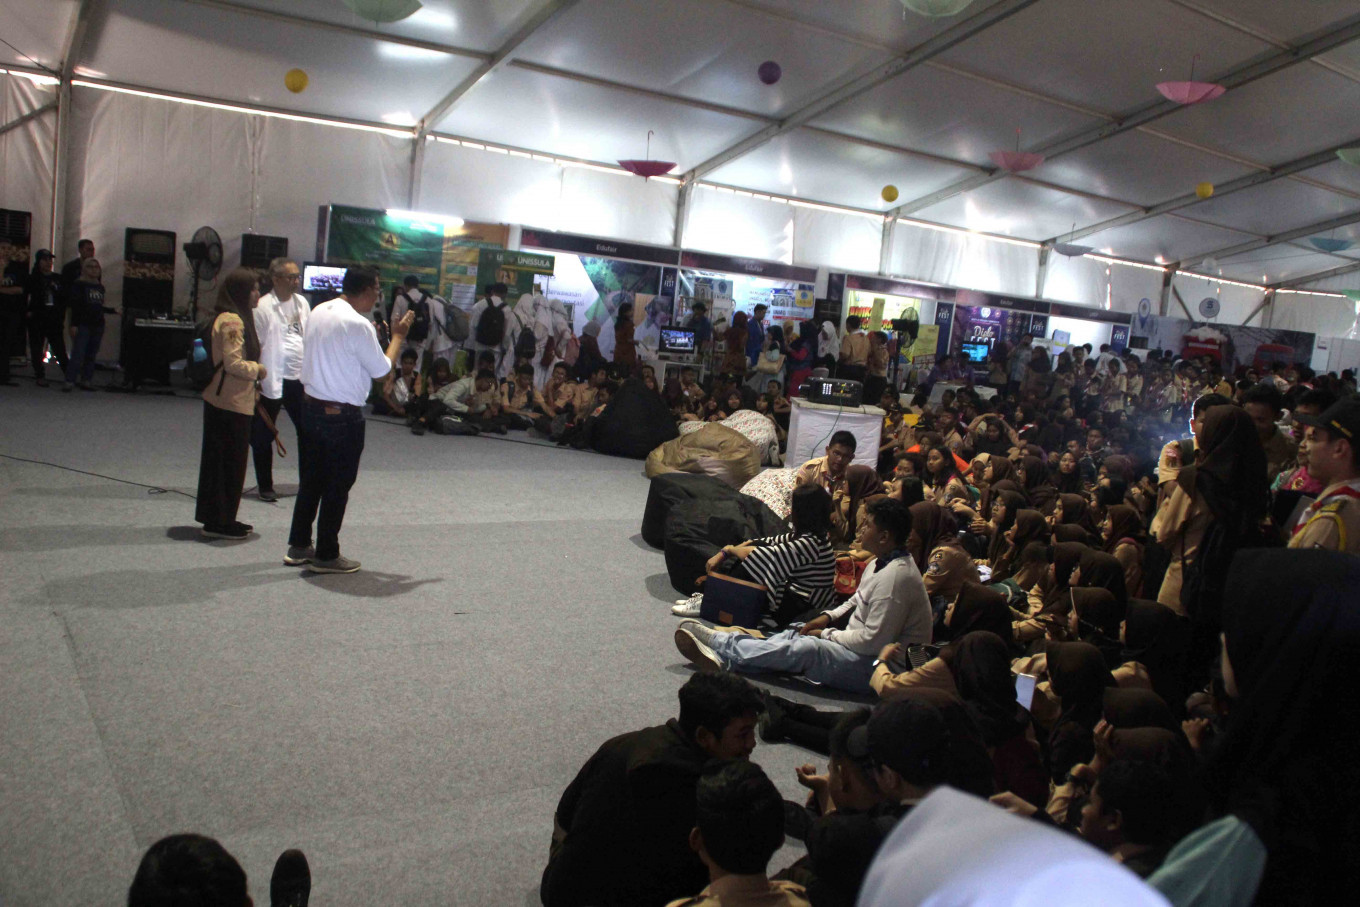 Diplofest offers Semarang students insights into diplomacy